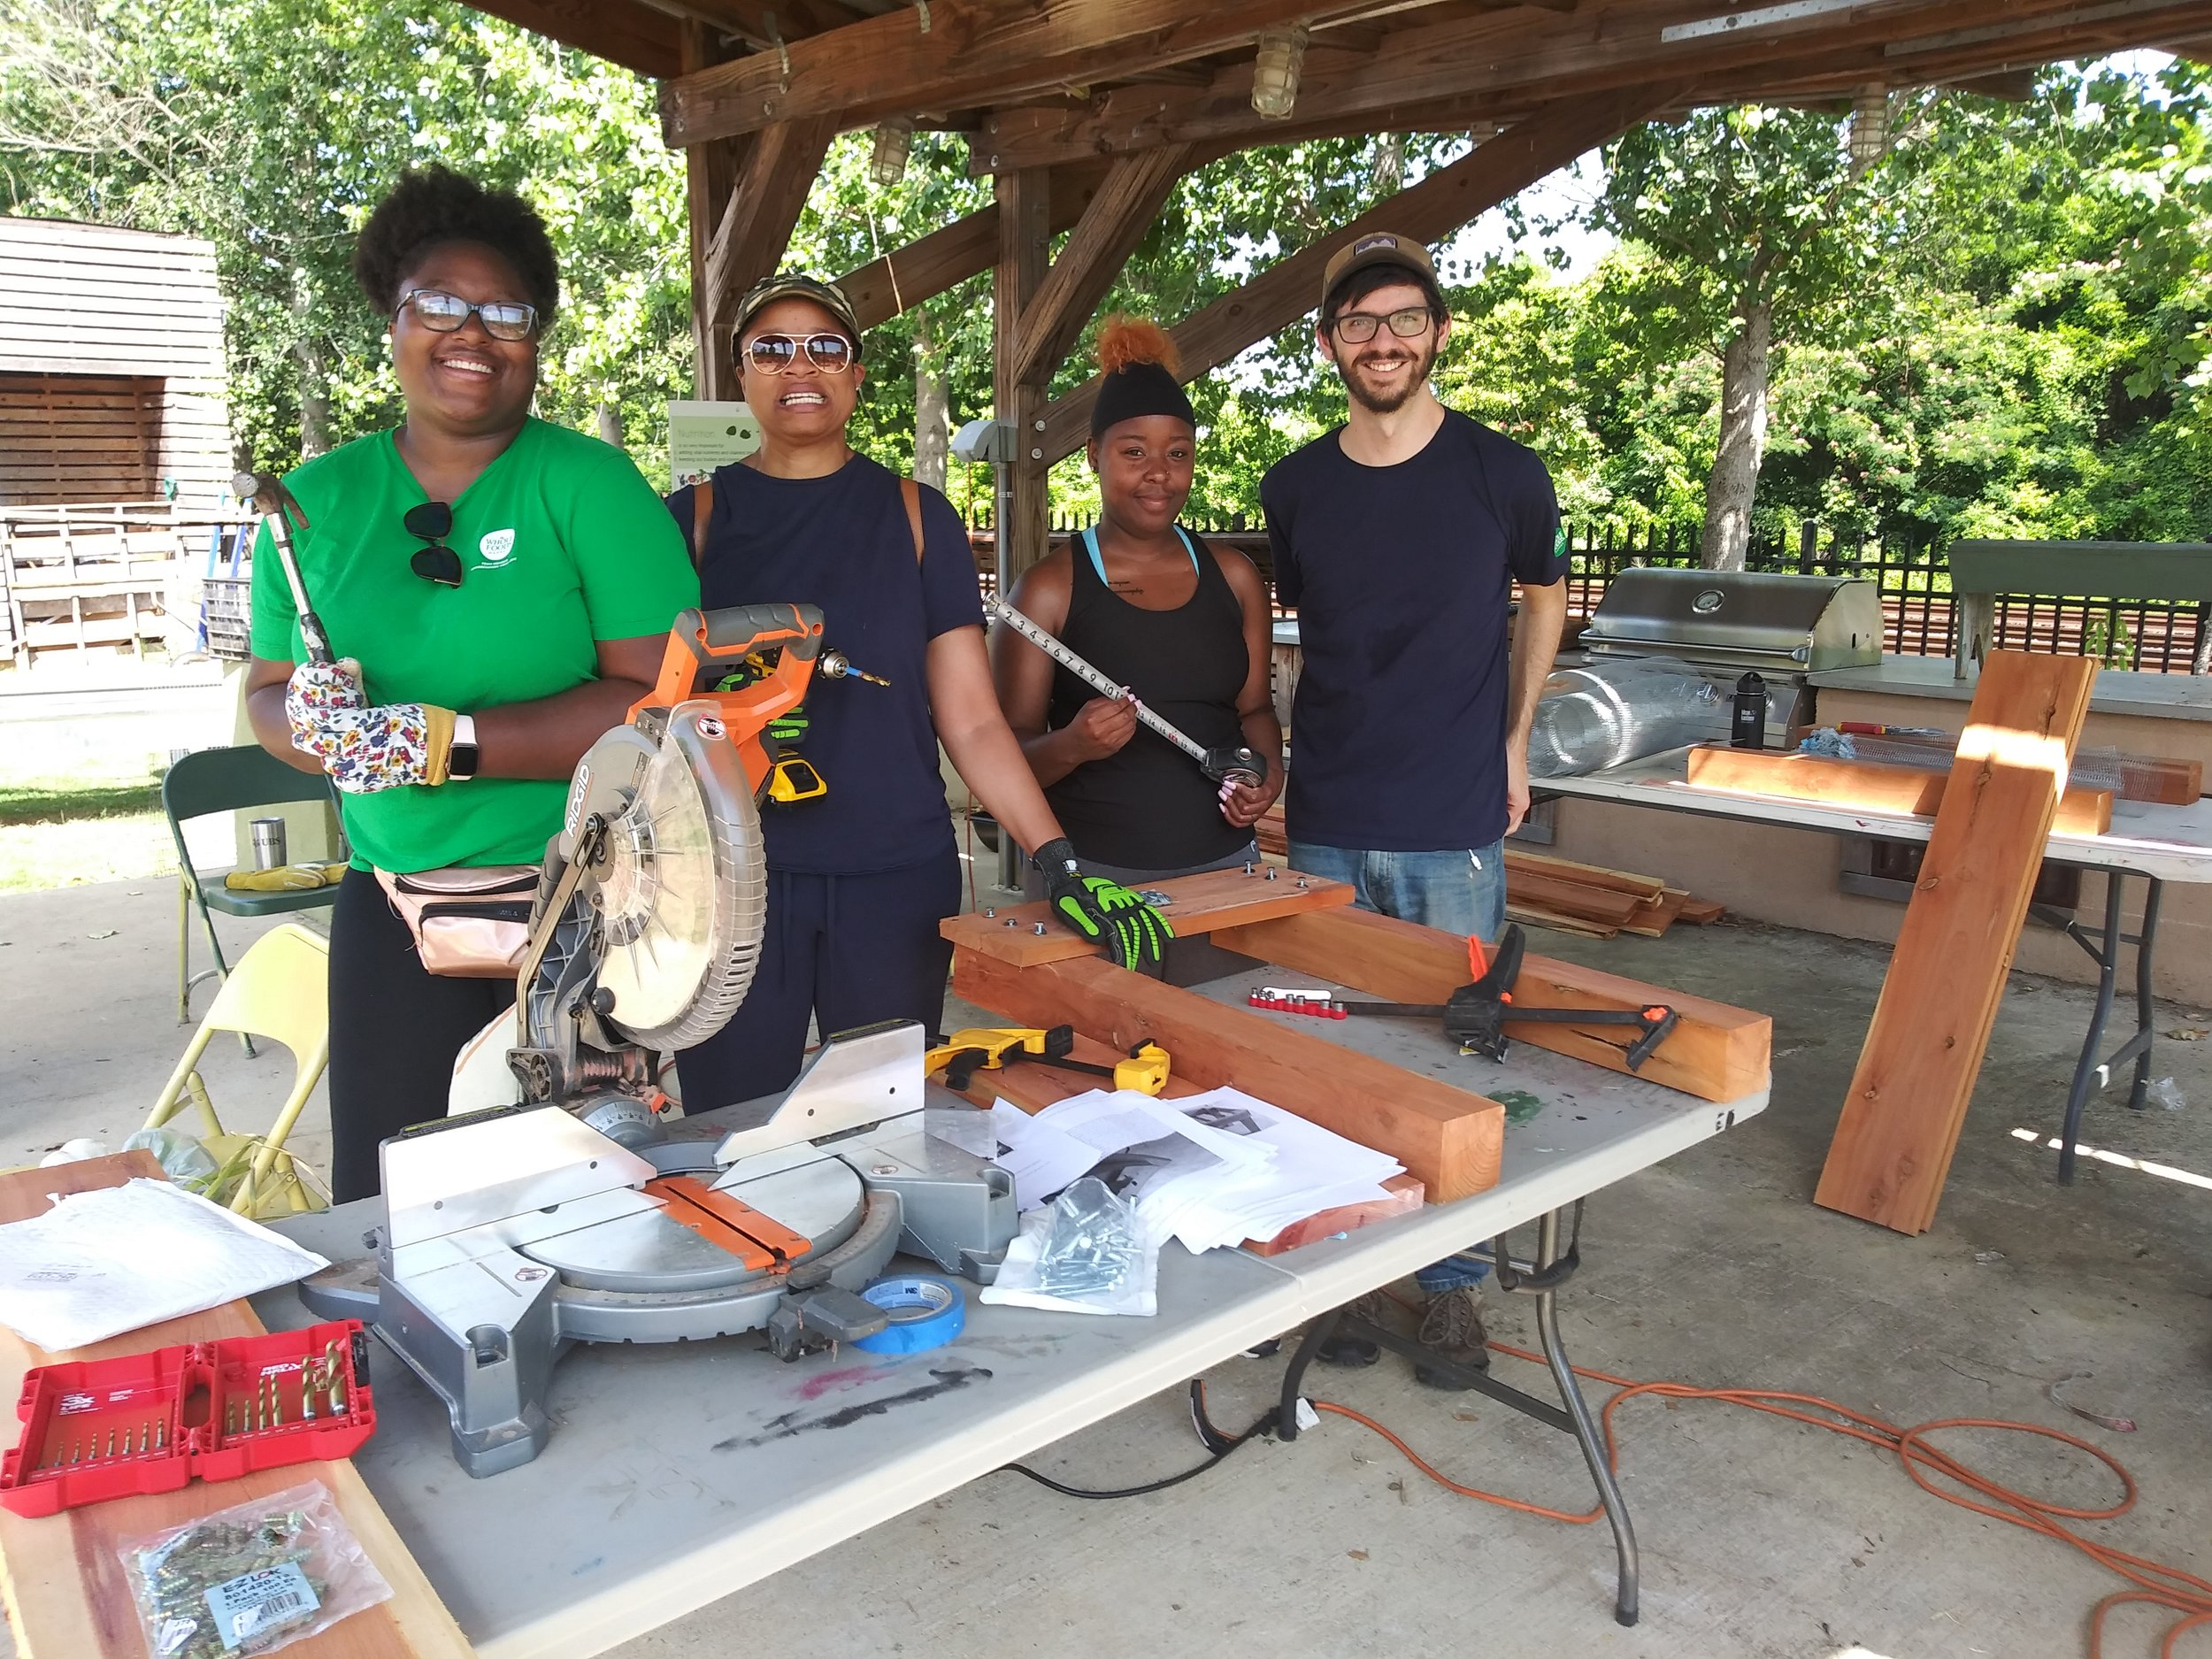 First Saturday volunteers from Whole Foods help build garden beds.